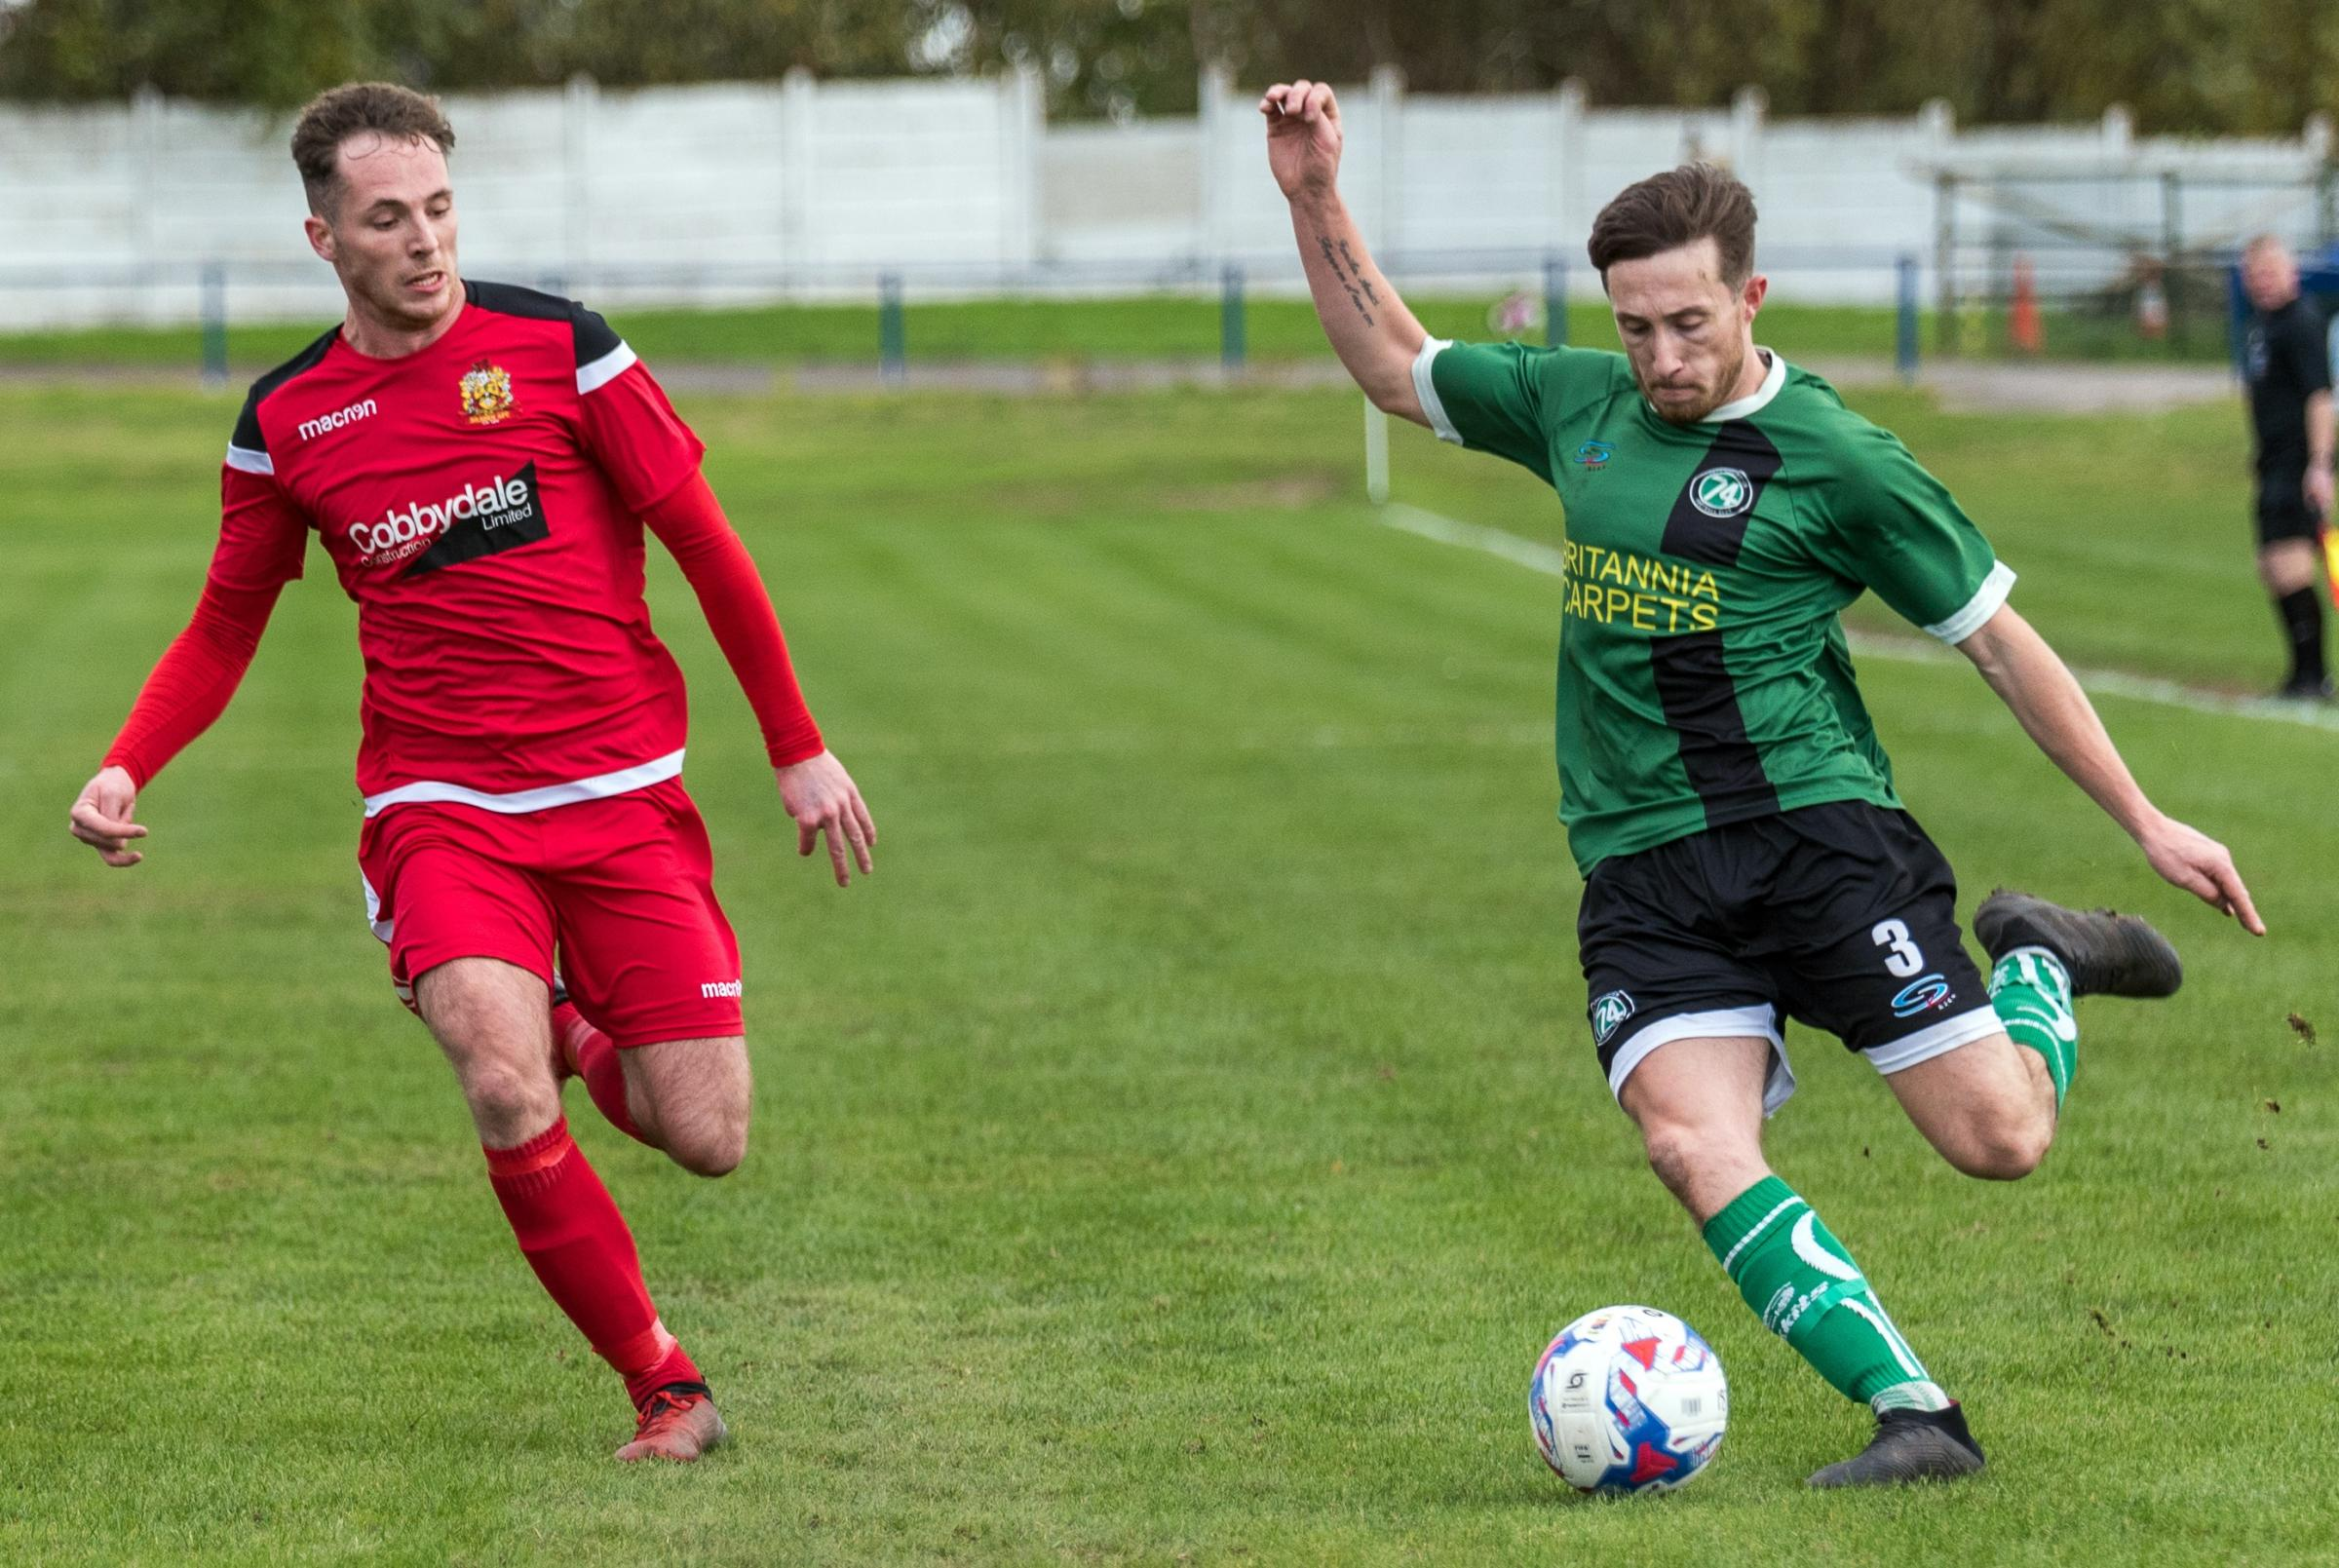 Matty Russell, right, and his 1874 Northwich teammates ran out convincing 5-0 victors when they hosted Silsden in a North West Counties League encounter back in October. Picture: Ian Dutton